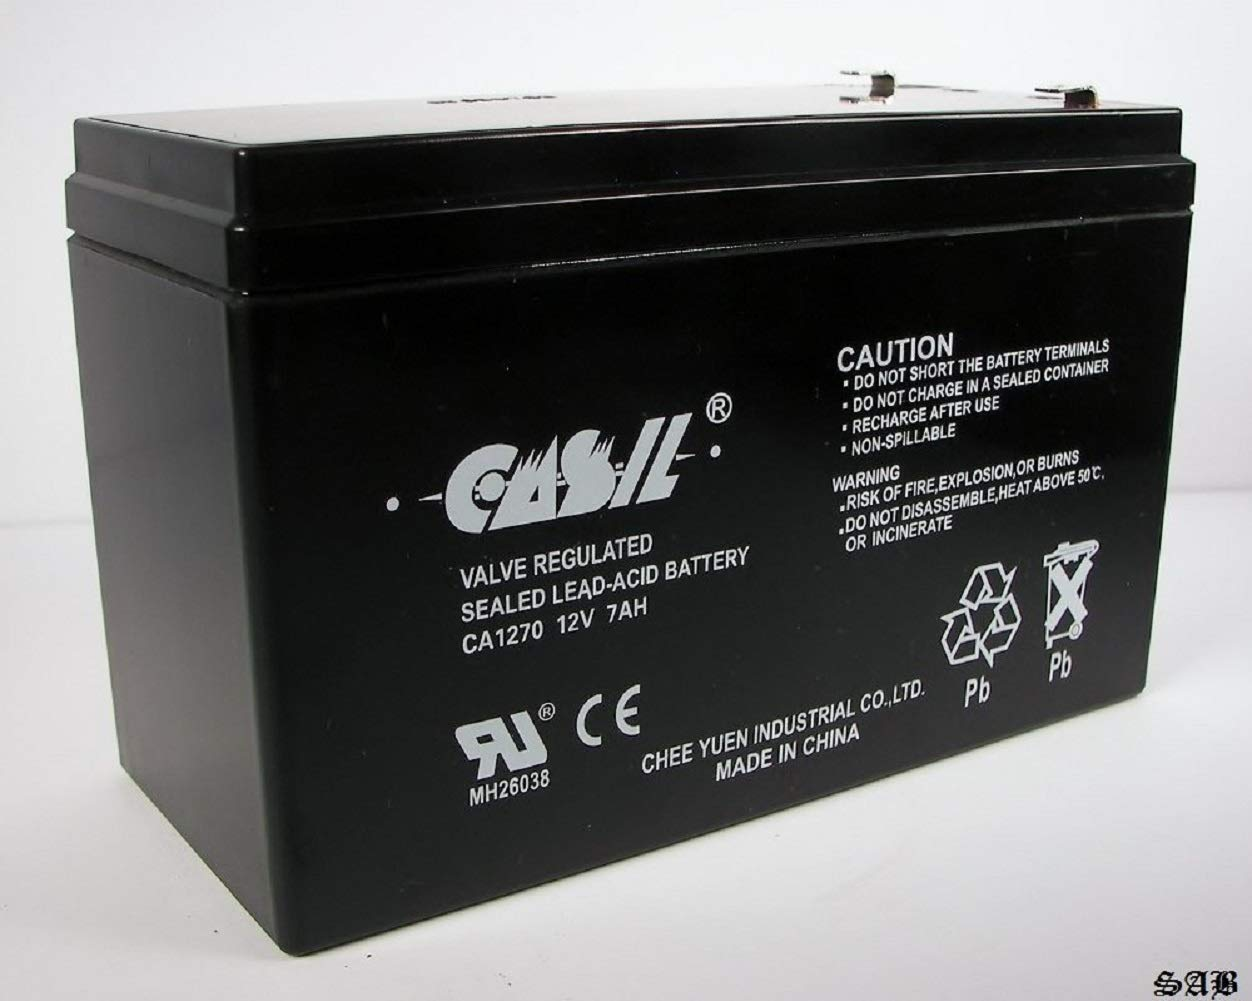 【お得】 CASIL 500 12V 7AH BE500U CA1270 APC Back-UPS ES 500 VA 7AH BE500C BE500U UPSバッテリー用 B07MQ1C43J, キャンディーマジック:b53b1b8c --- svecha37.ru